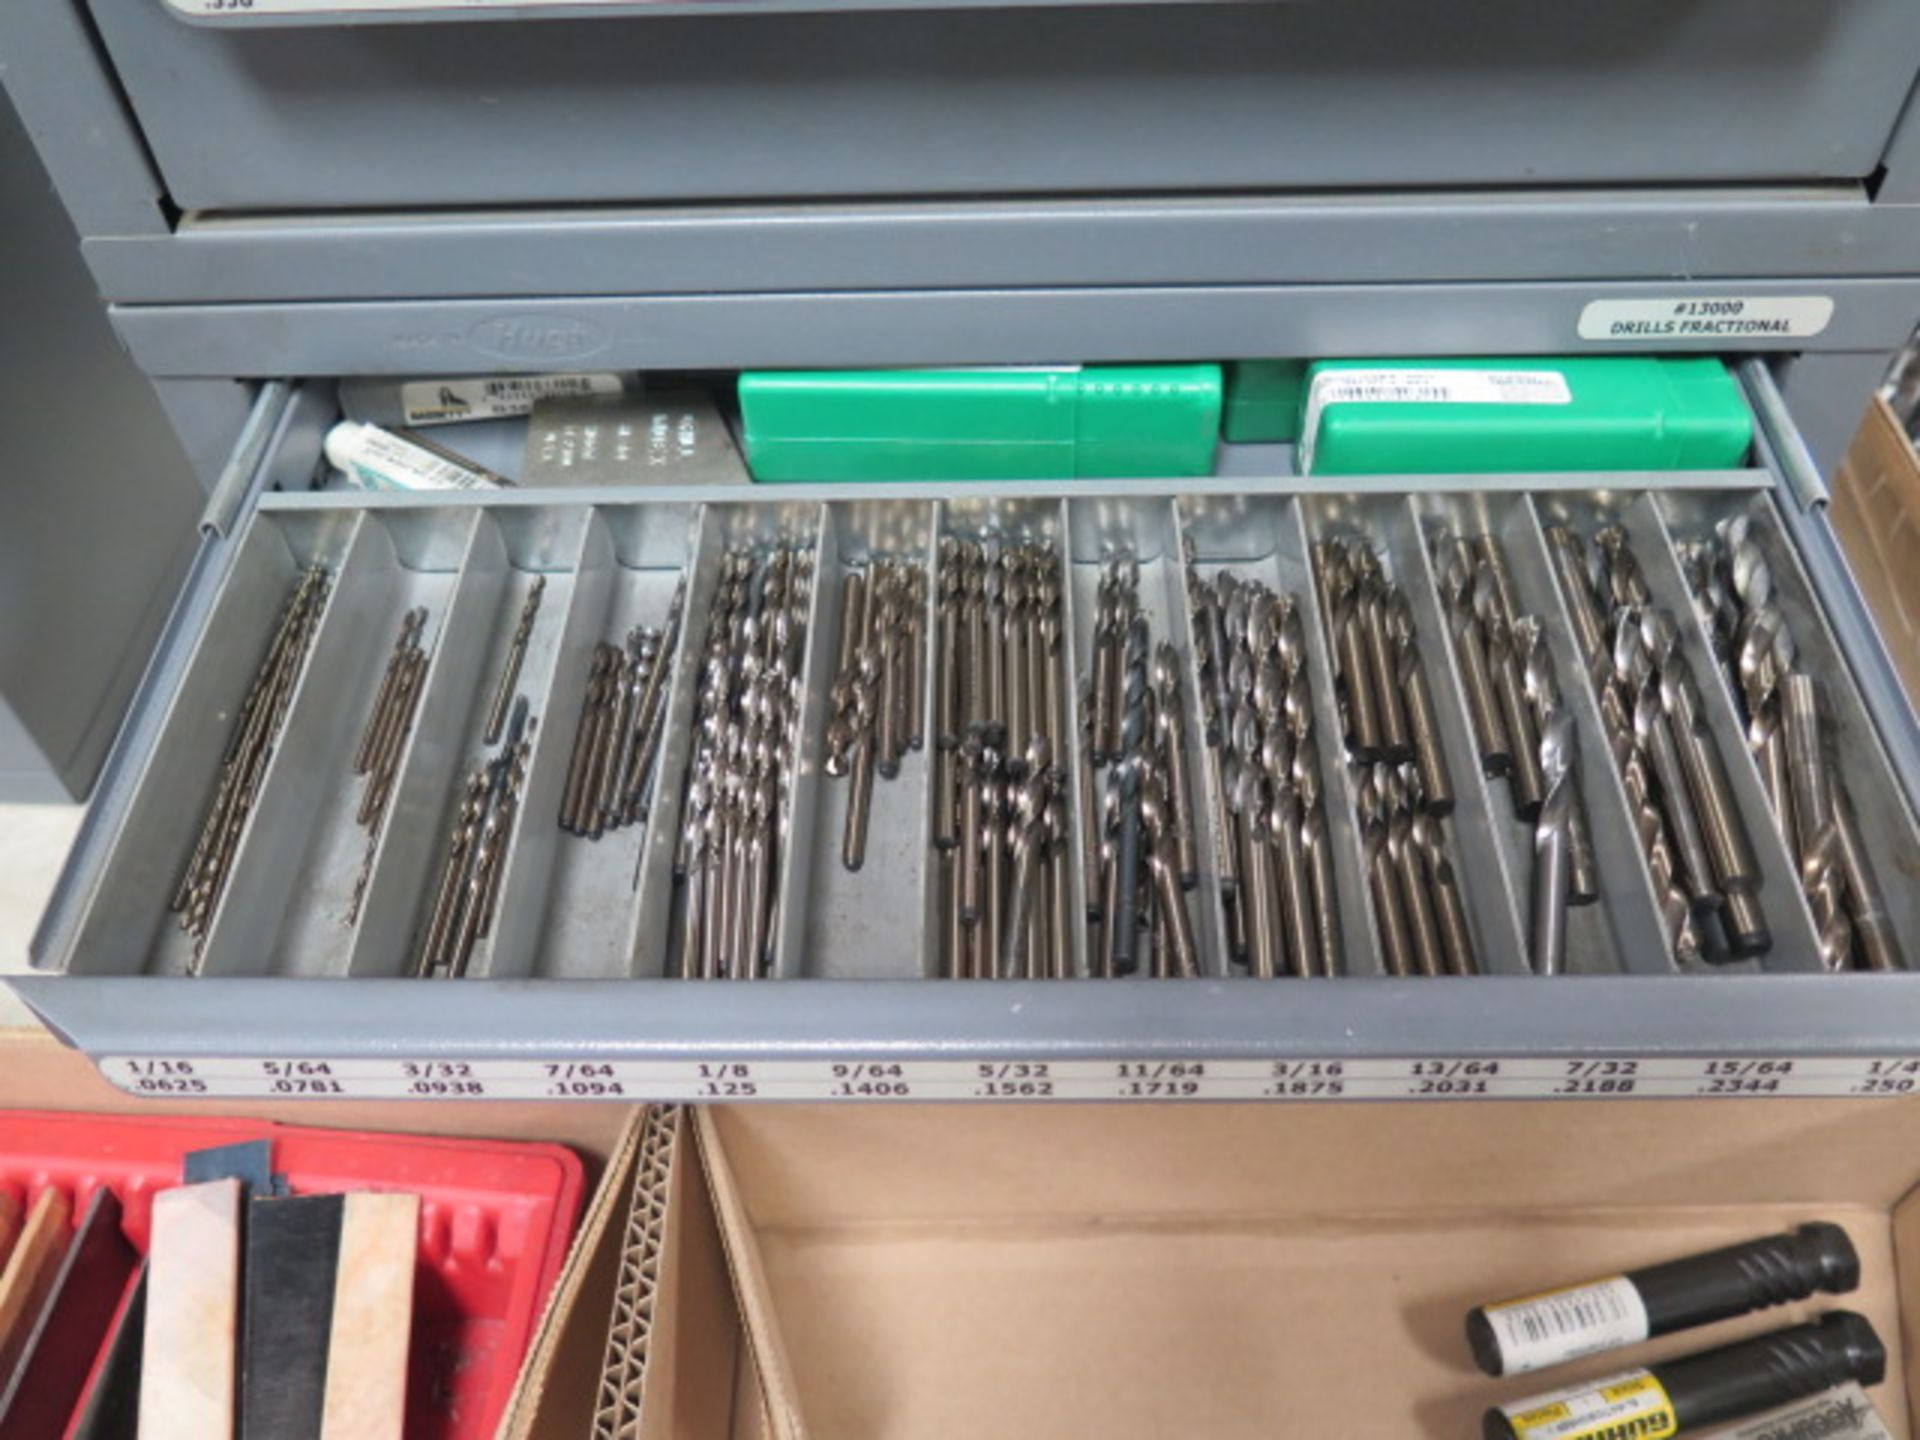 Huot Drill Cabinets (3) w/ Drills (SOLD AS-IS - NO WARRANTY) - Image 7 of 15